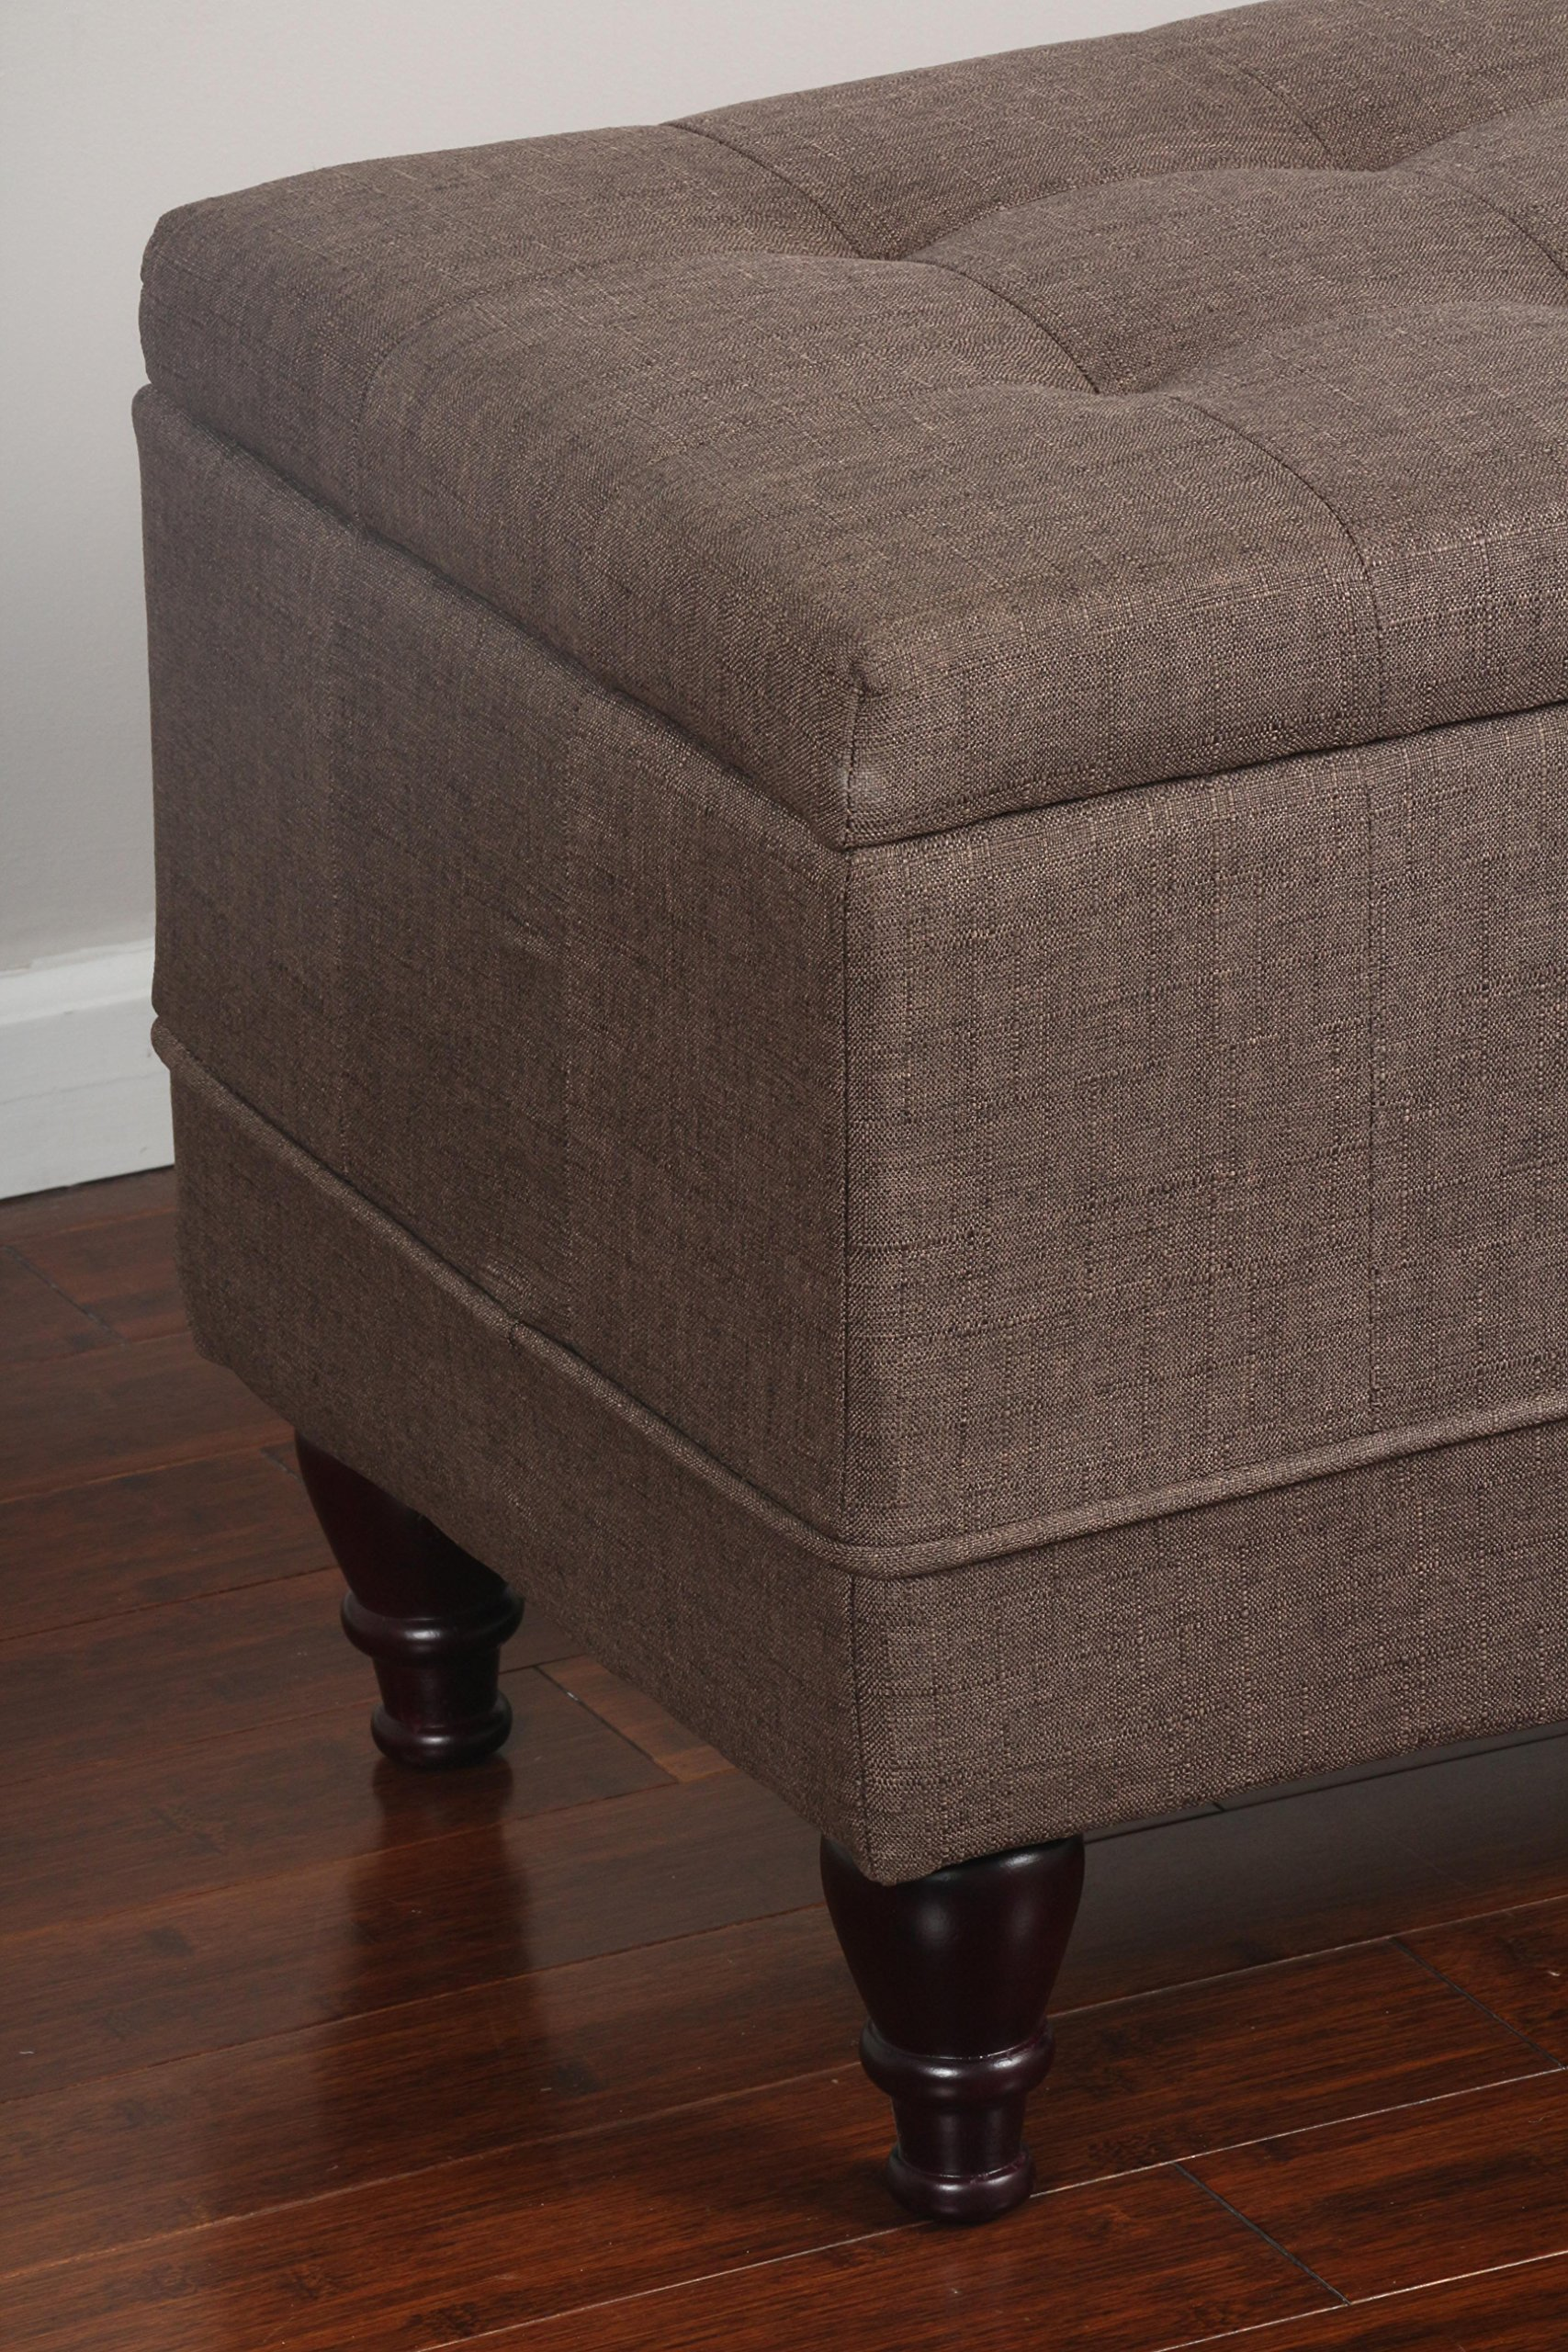 Home Life 59'' x 17'' Extra Long Front of Bed Storage Lift Top Bench Ottoman, Queen, Brown by LIFE Home (Image #3)